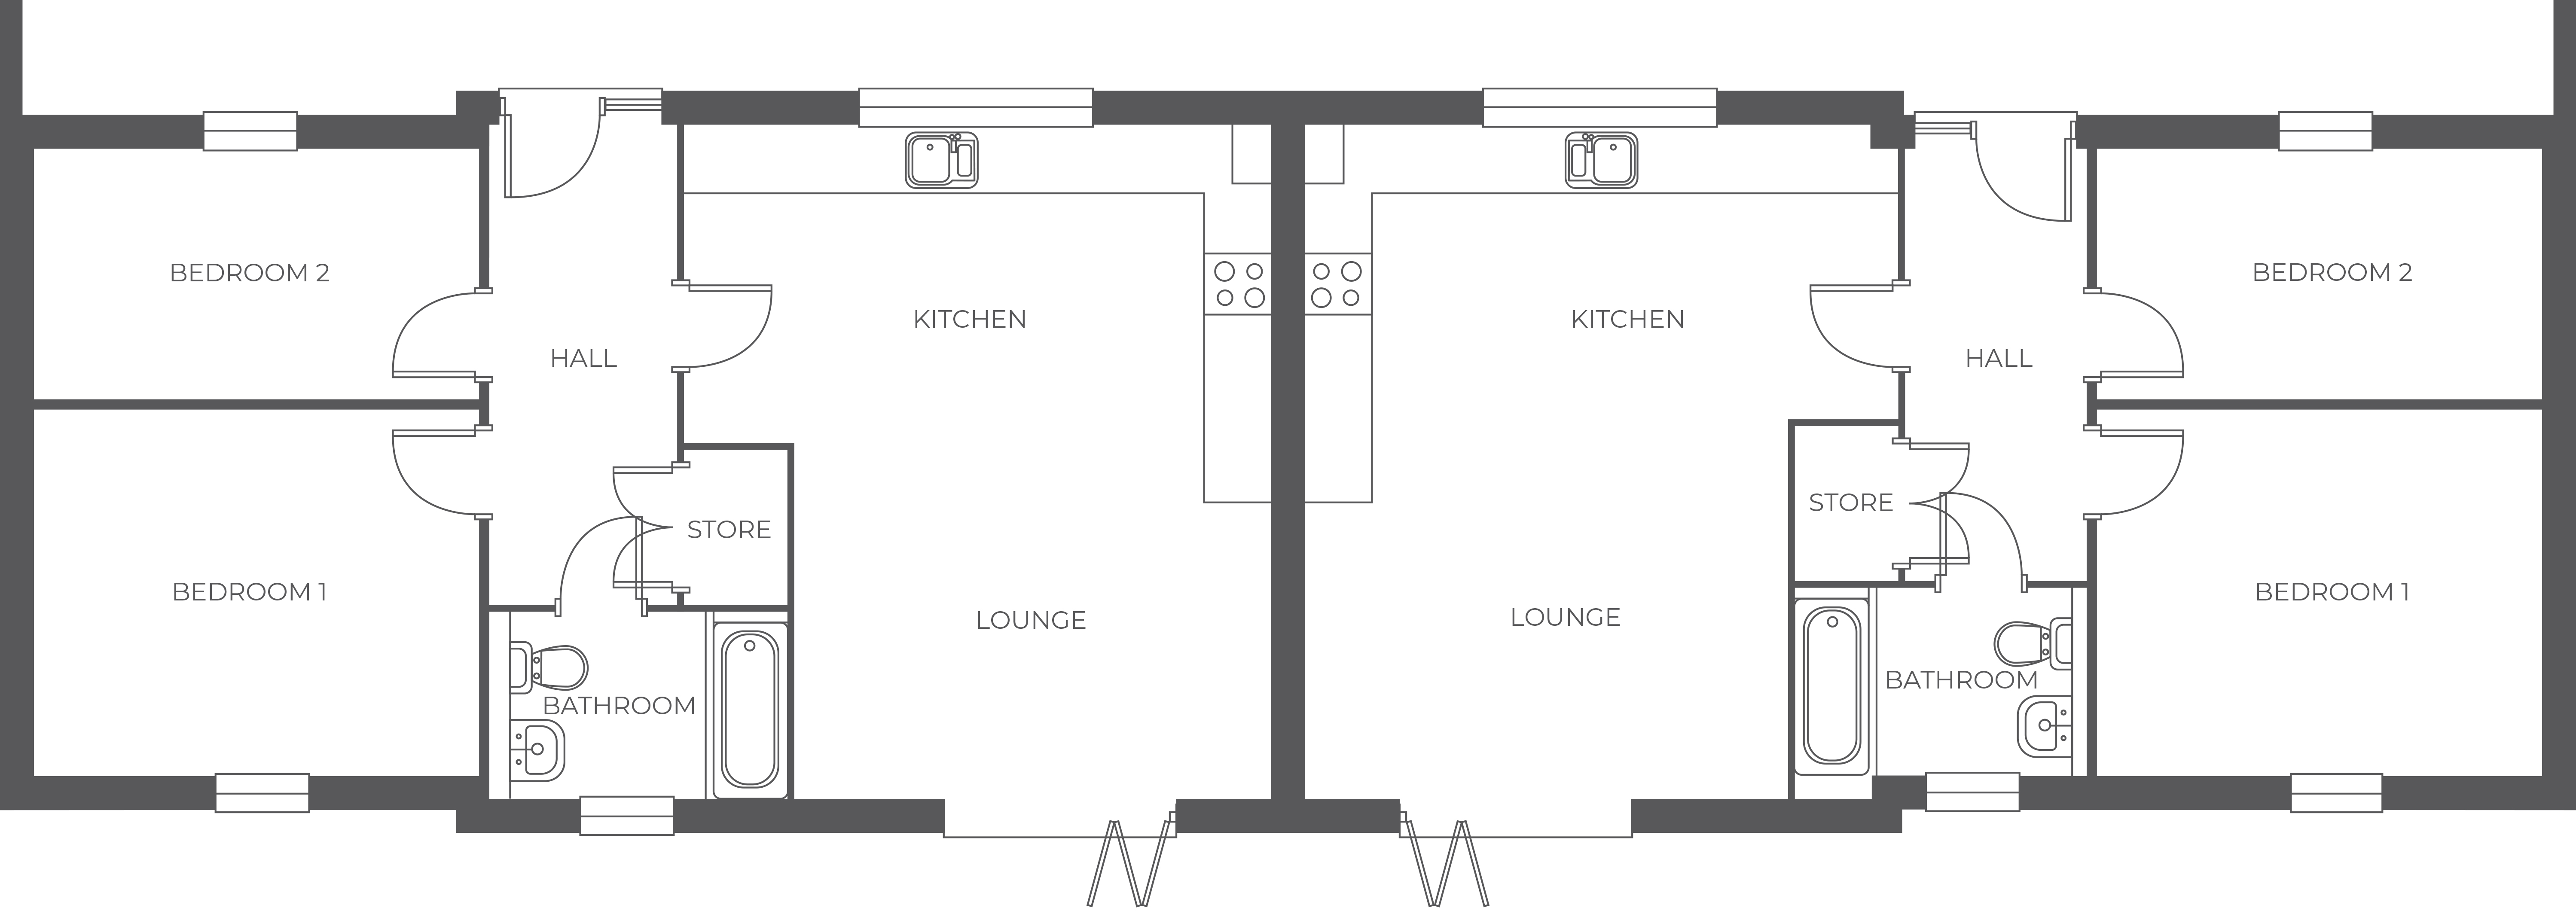 Copperfields, Plot 1 floor plan